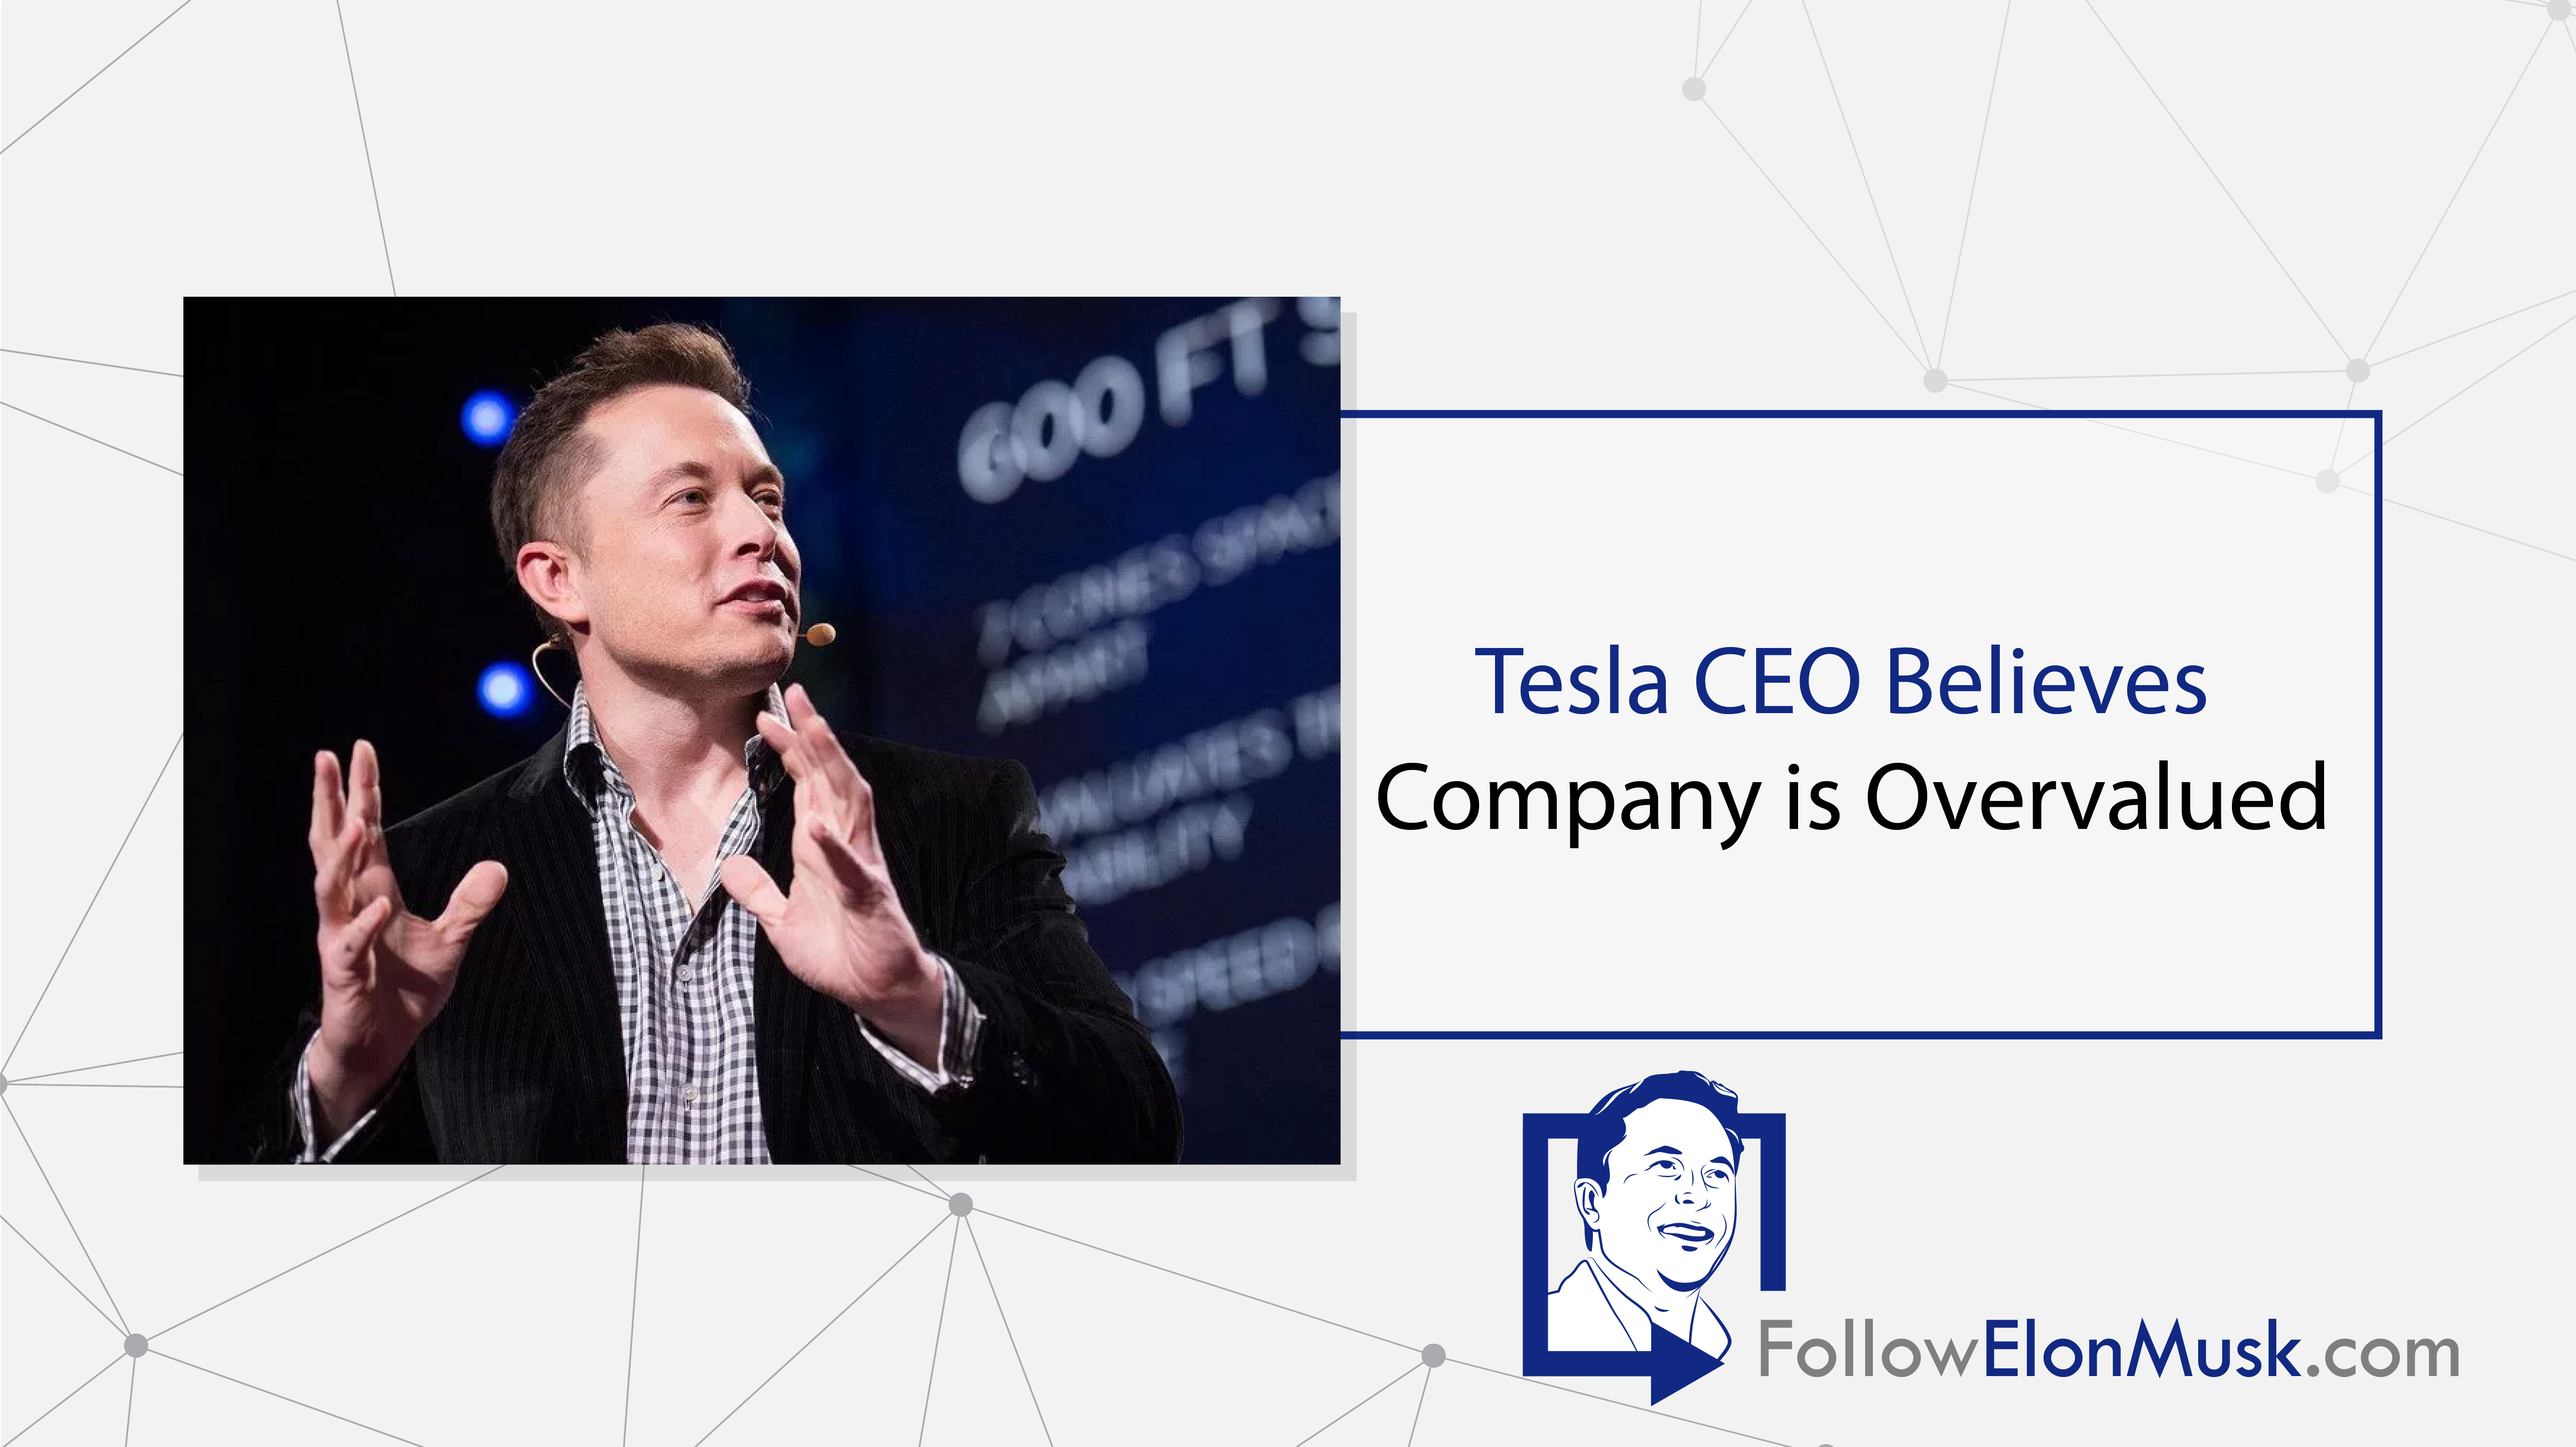 Tesla CEO Believes Company is Overvalued